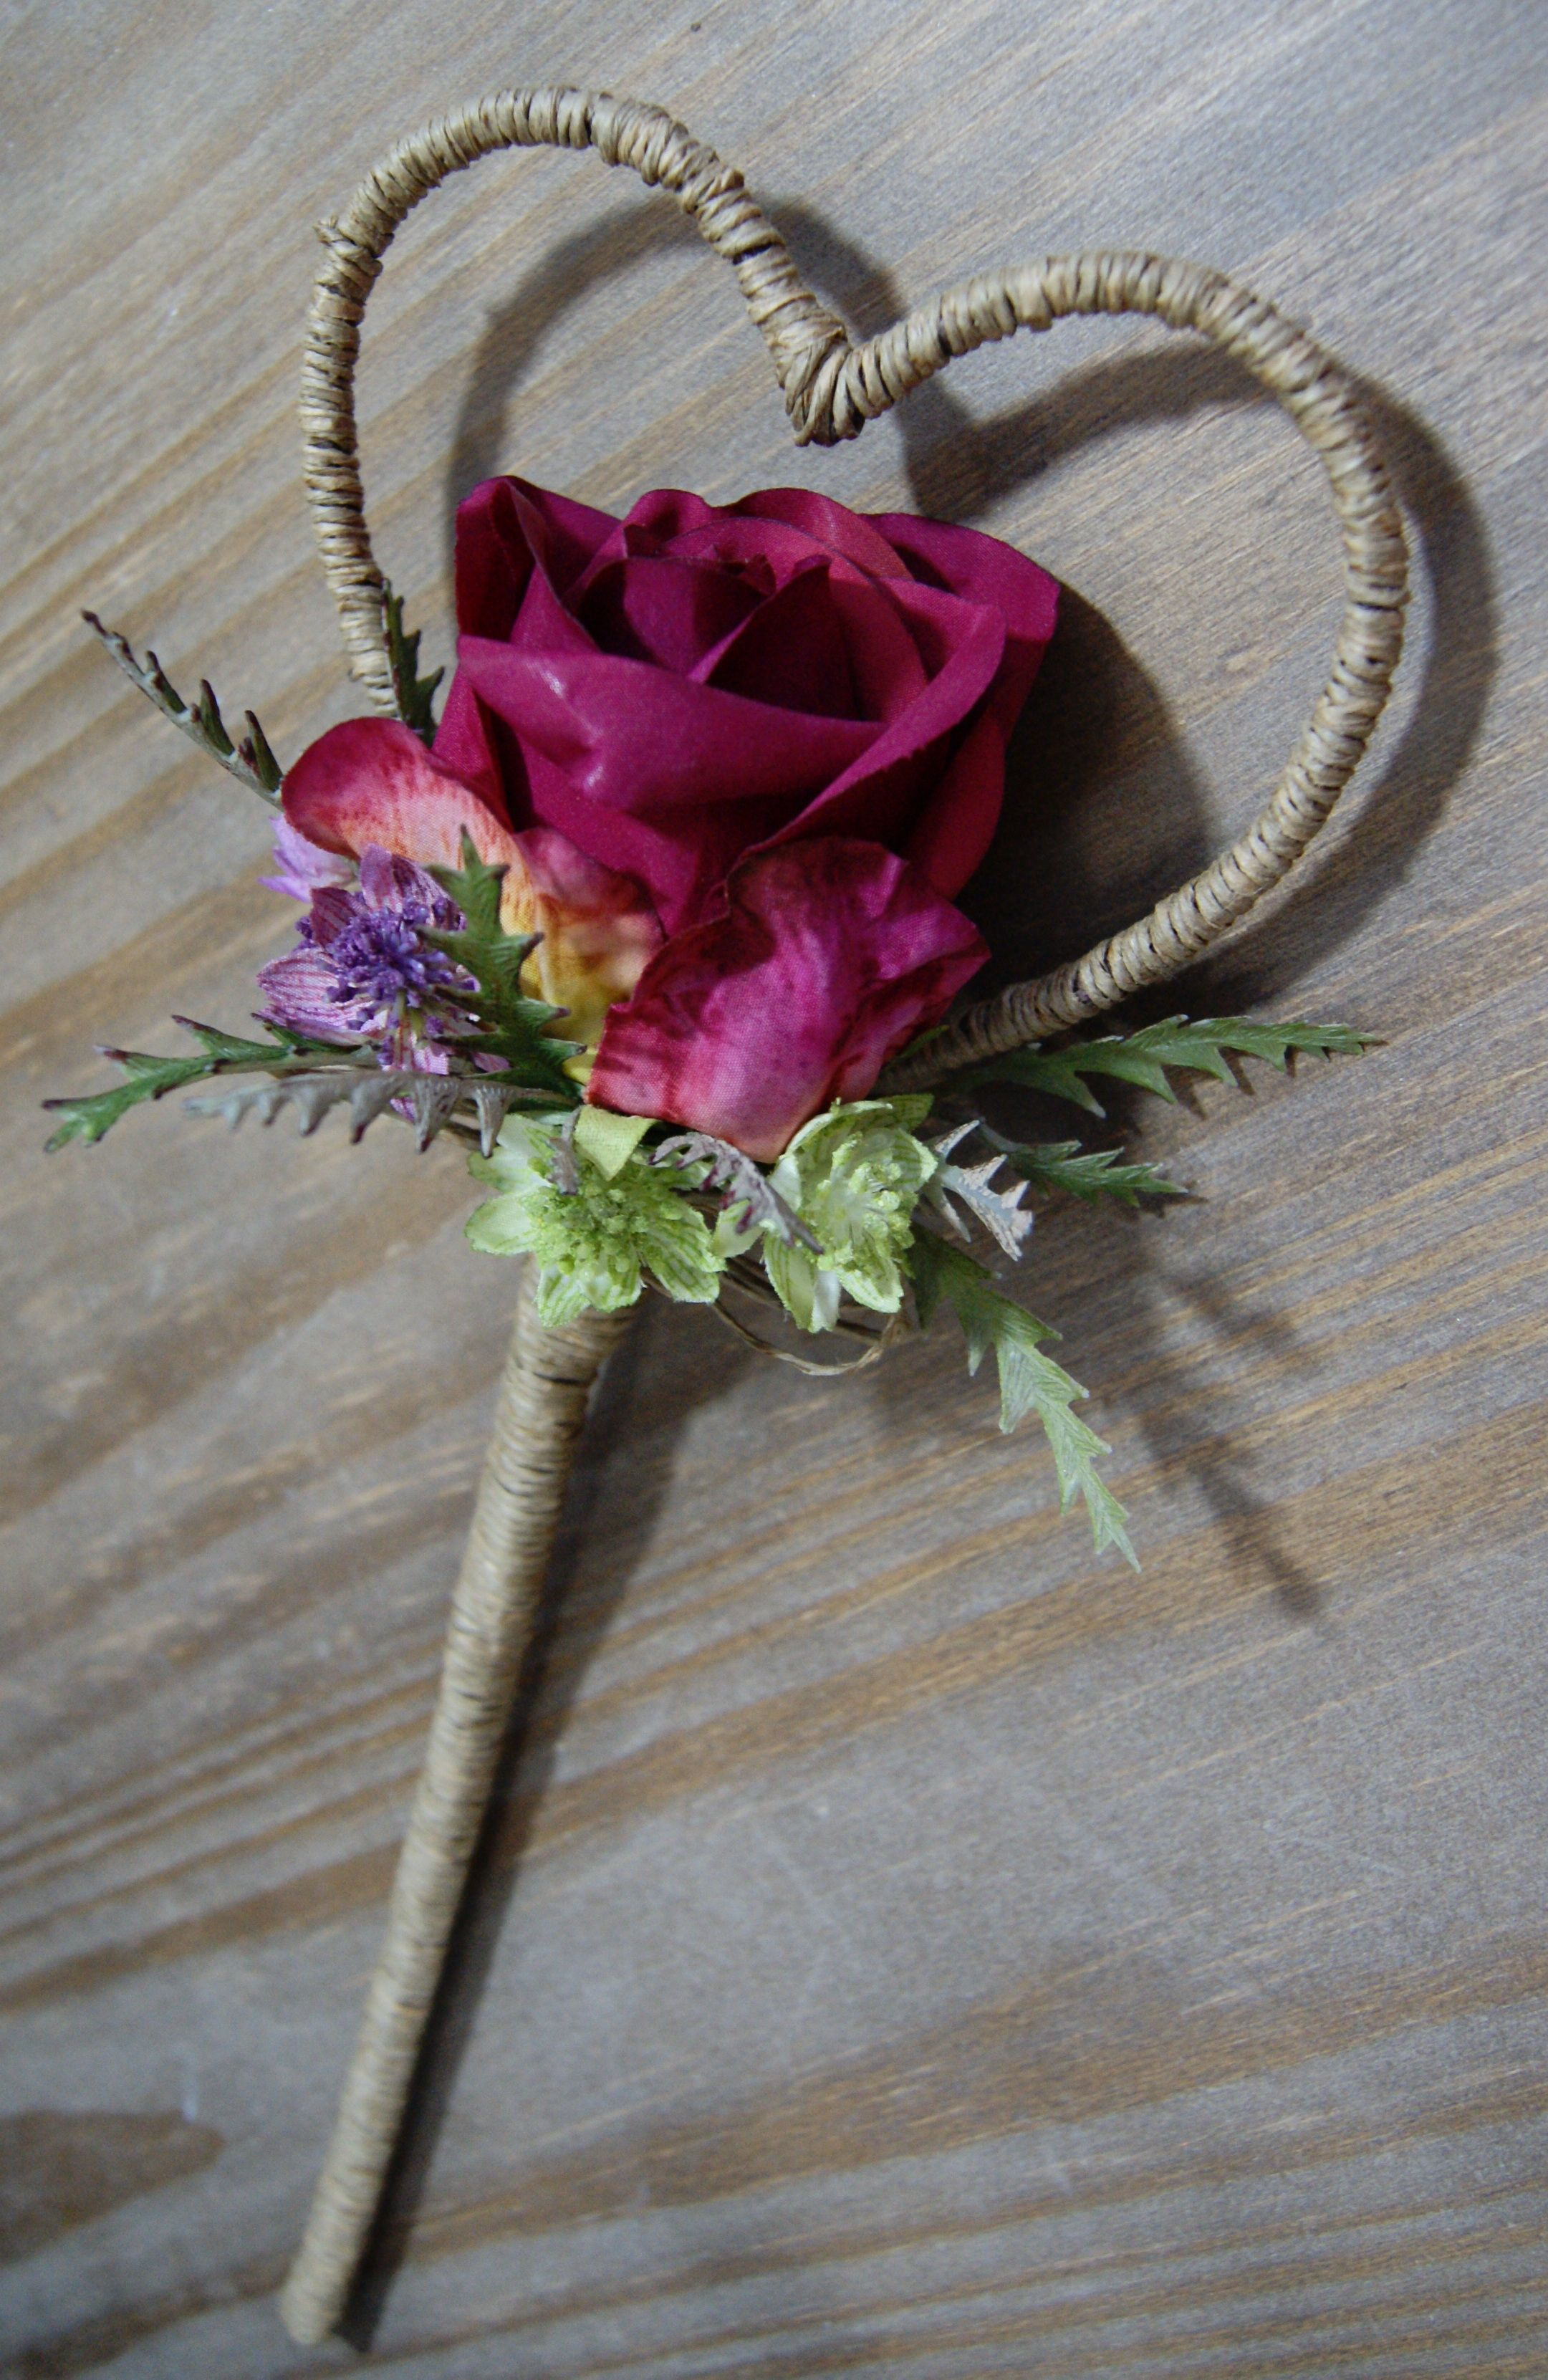 Wedding Flowers - Flower Girl Heart Wand in a Rustic Design with Natural Twine - Artificial Flowers